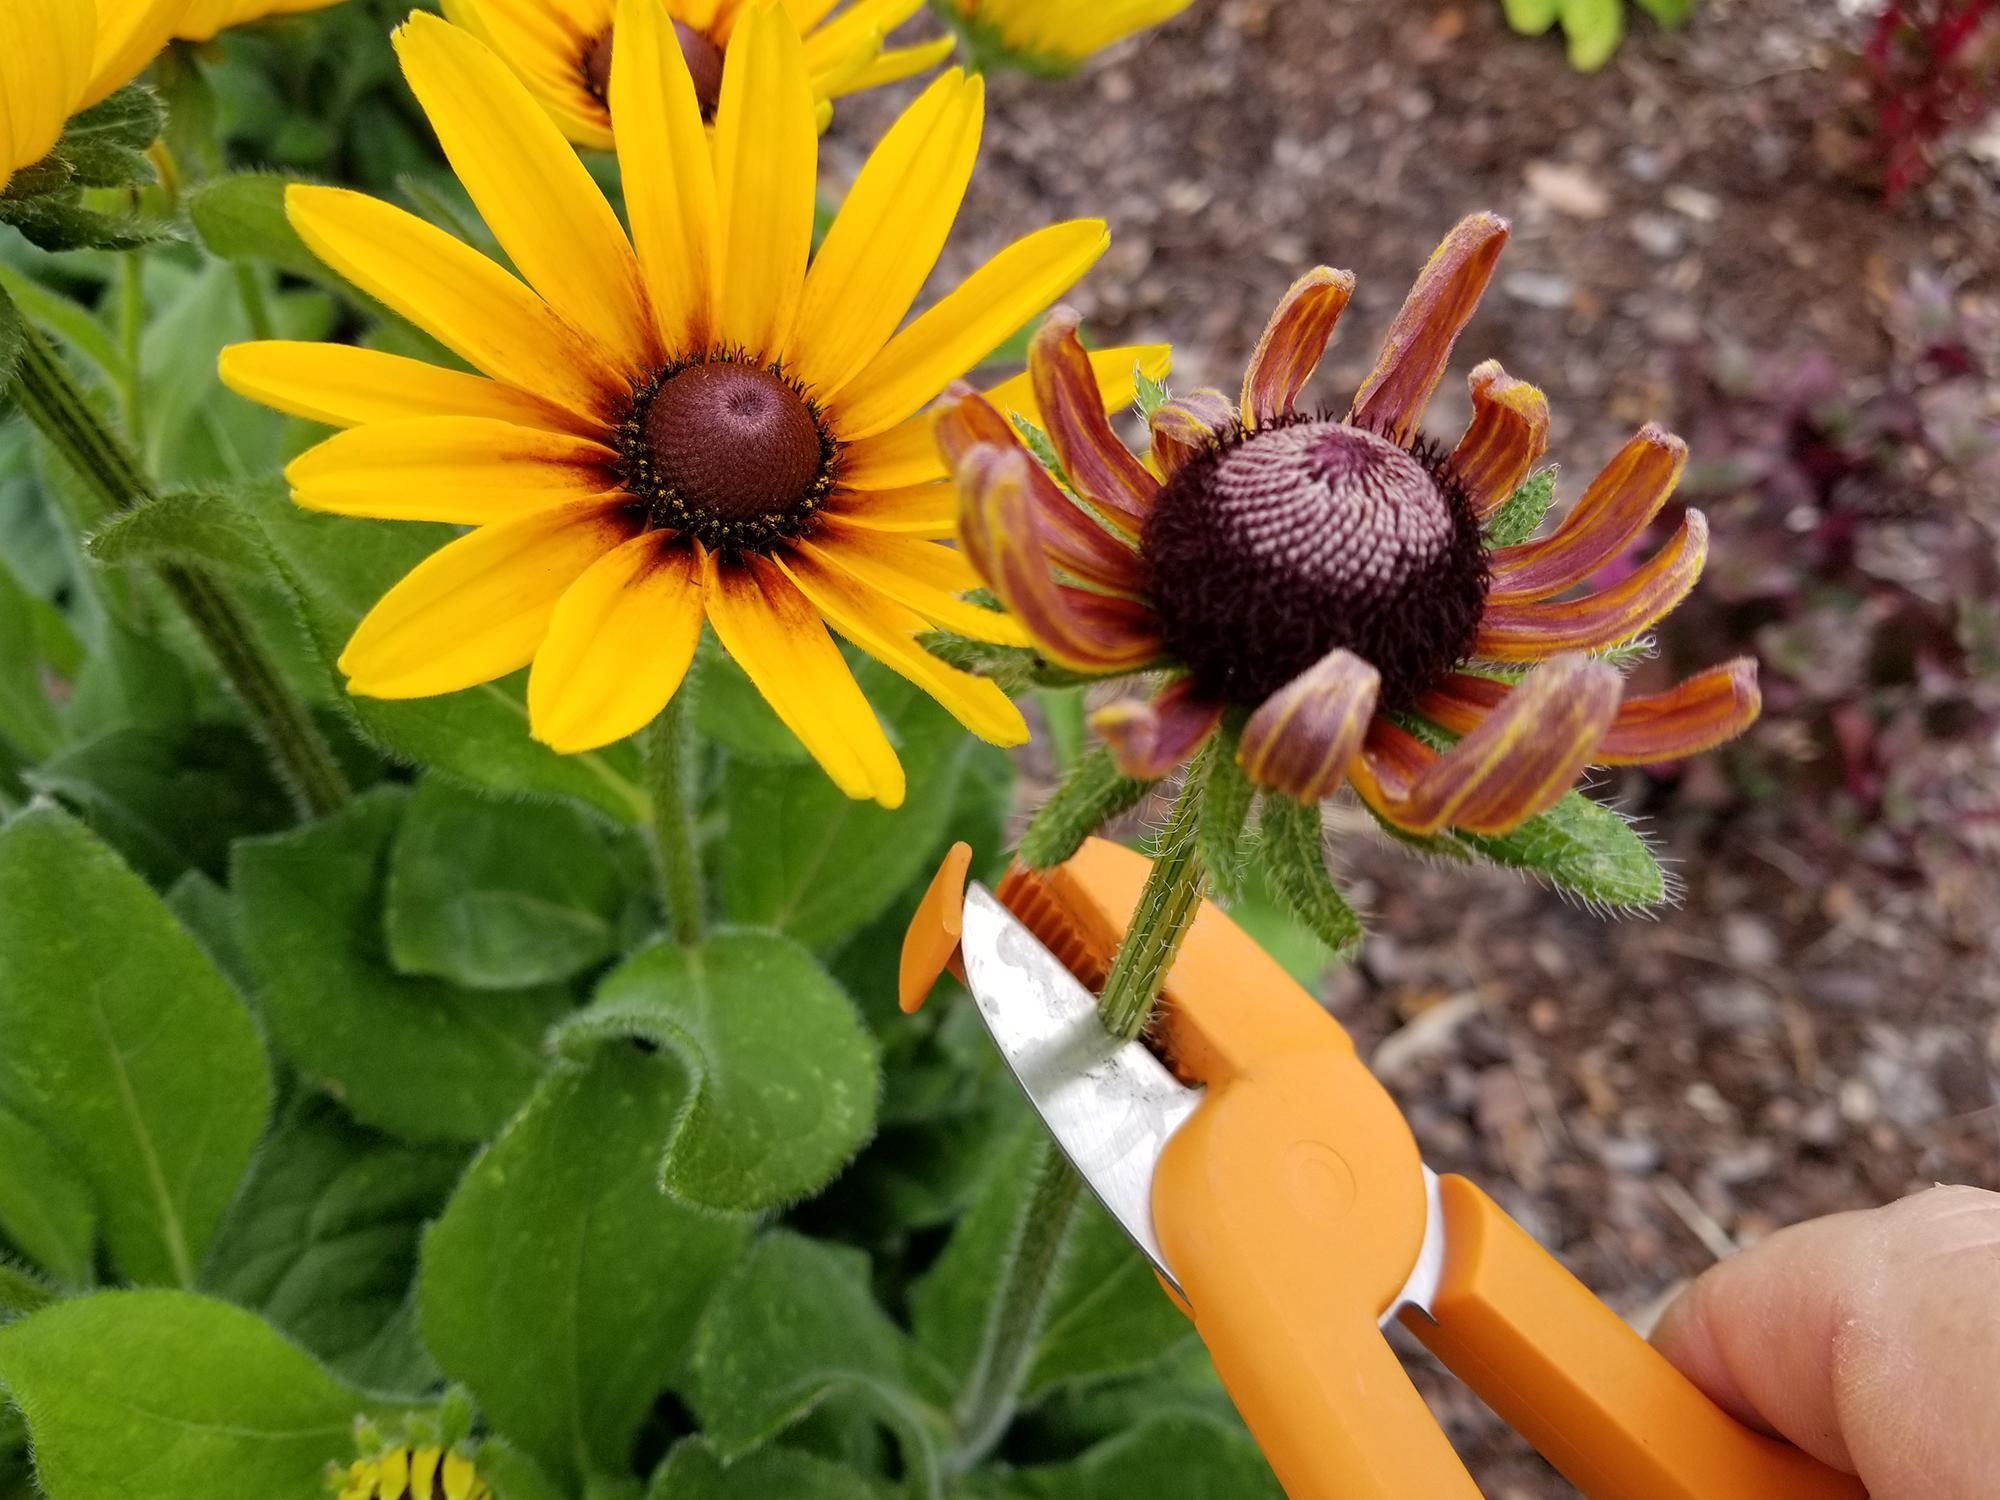 A pair of orange trimmers is about to snip off a spent flower.